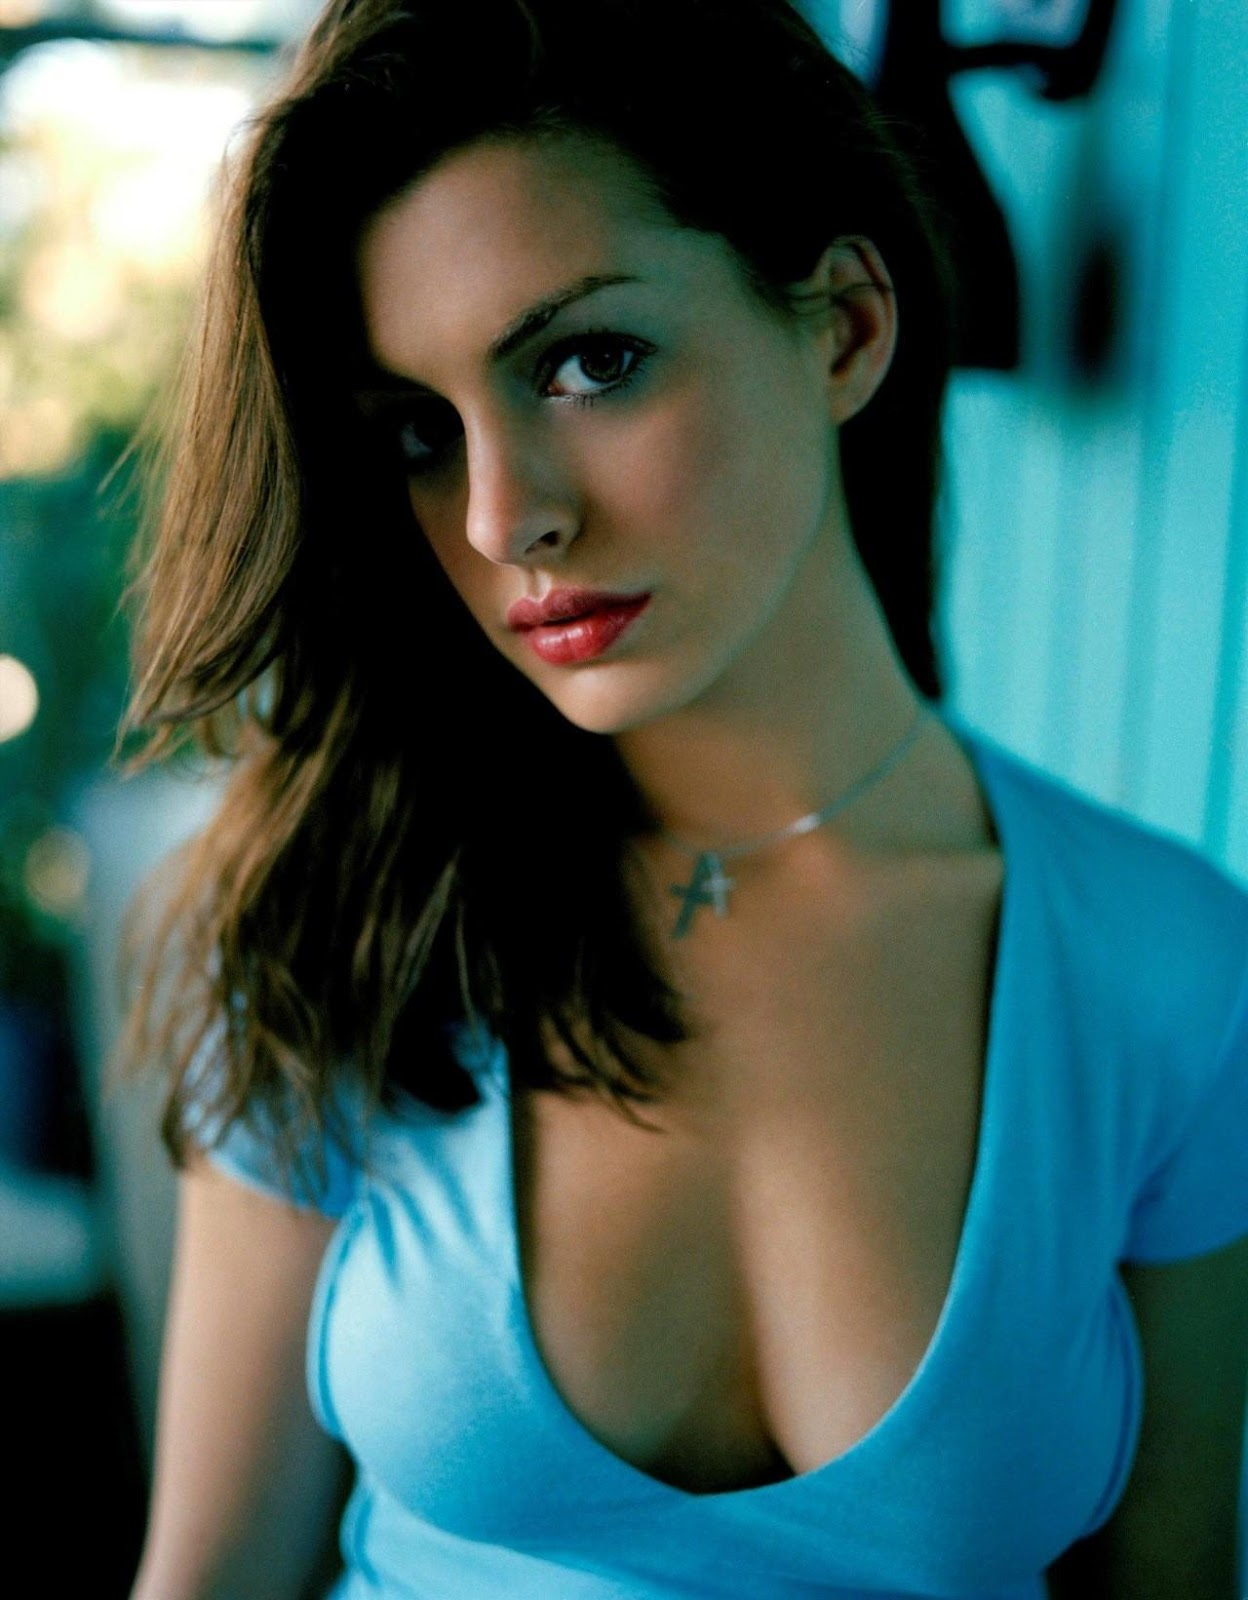 Cleavage Anne Hathaway nudes (11 foto and video), Sexy, Hot, Boobs, bra 2017